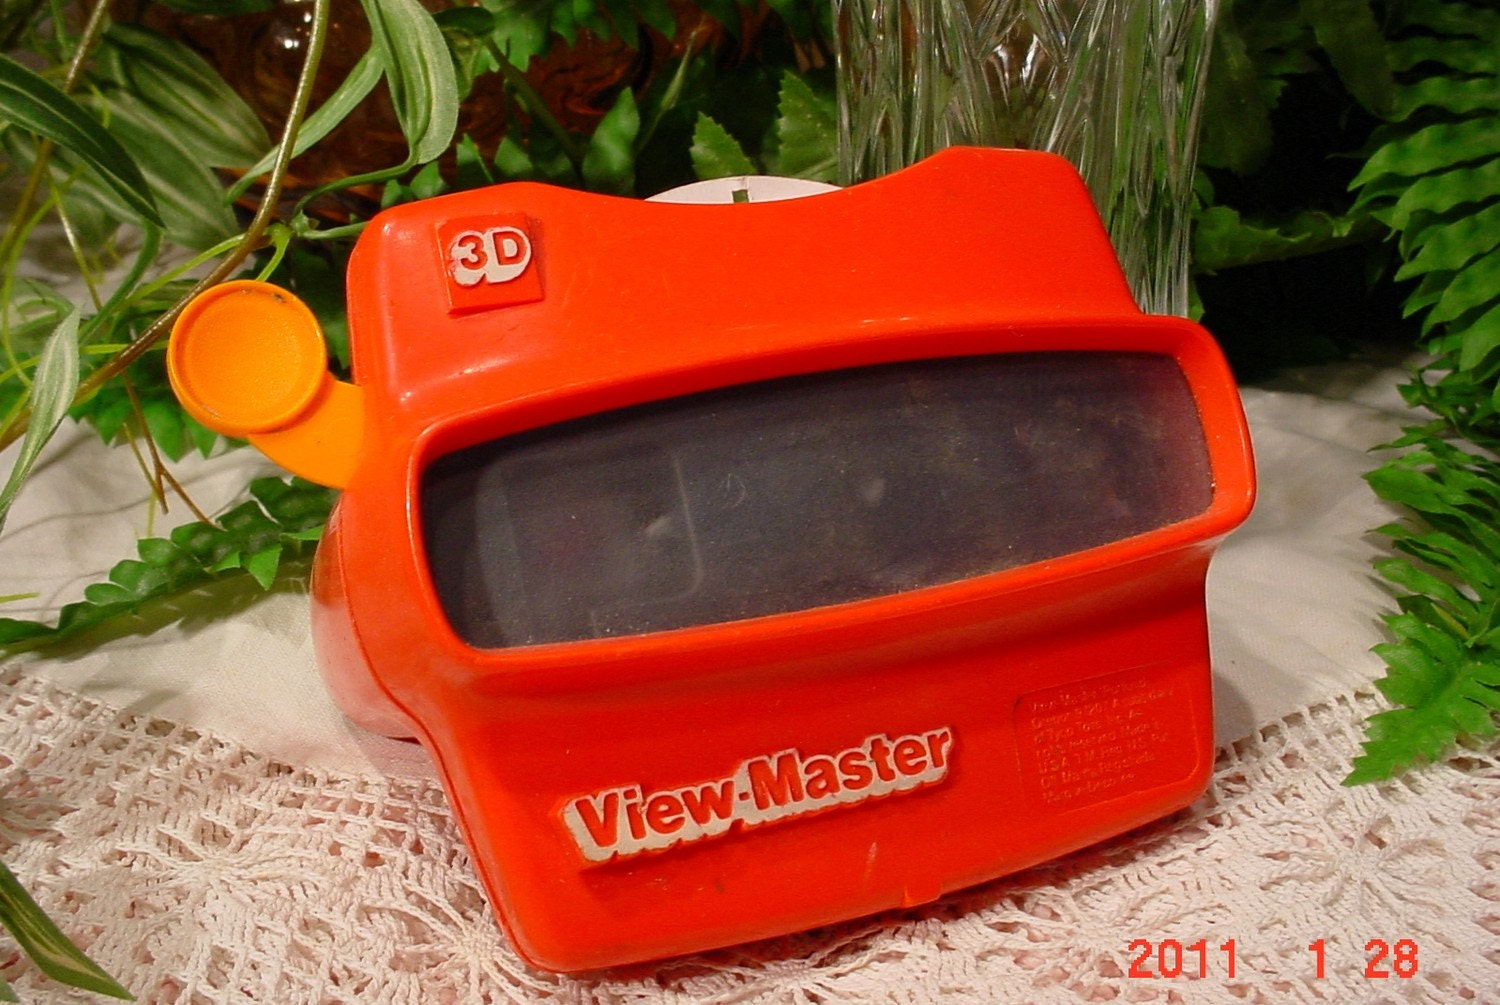 Toys From The 1980s : S d view master toy